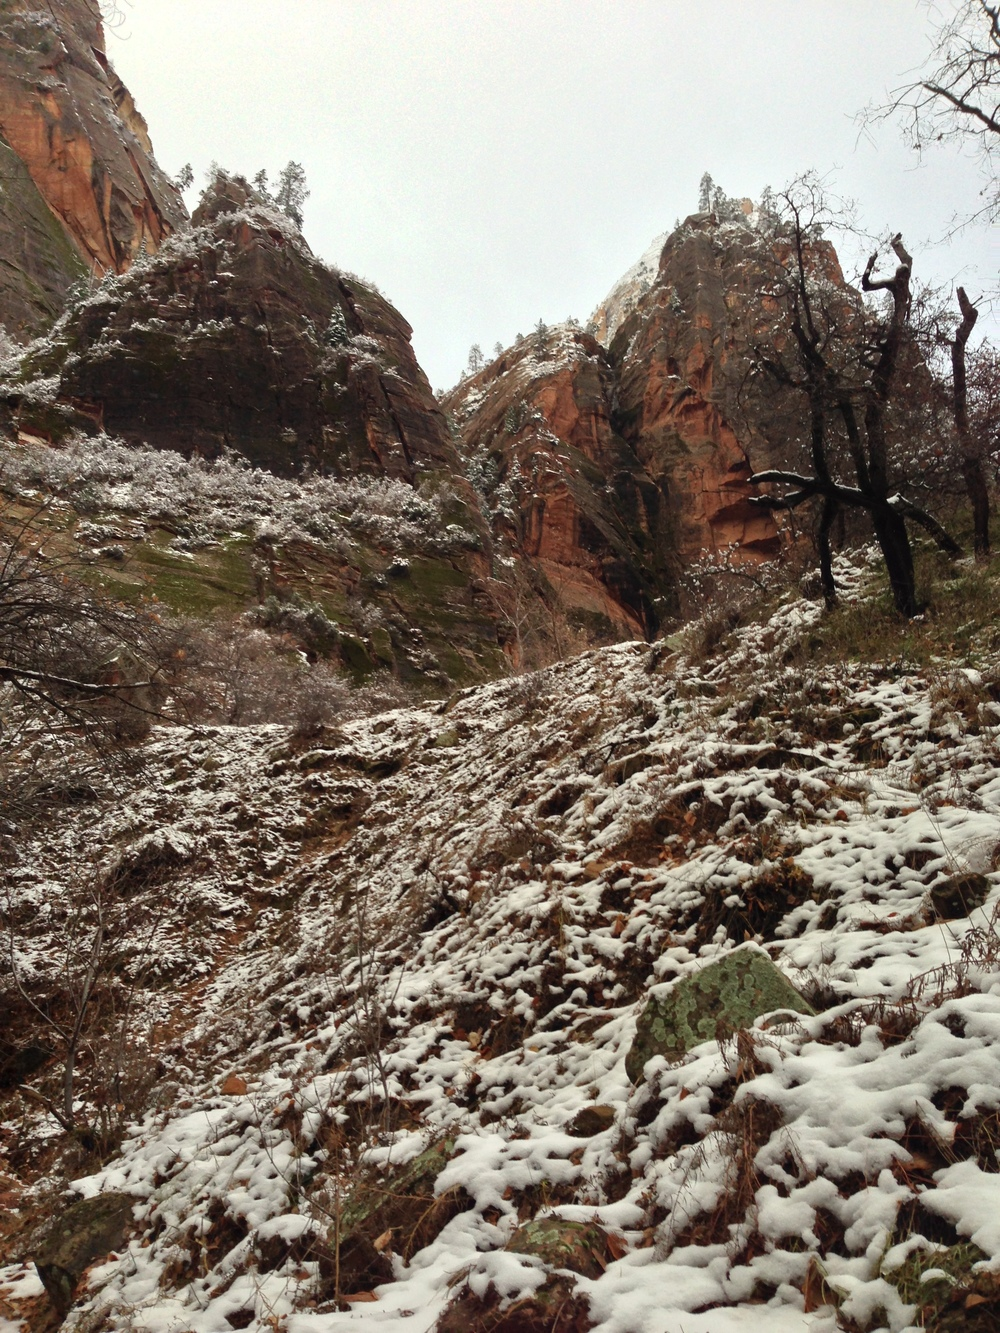 Heading up the trail toward Hidden Canyon